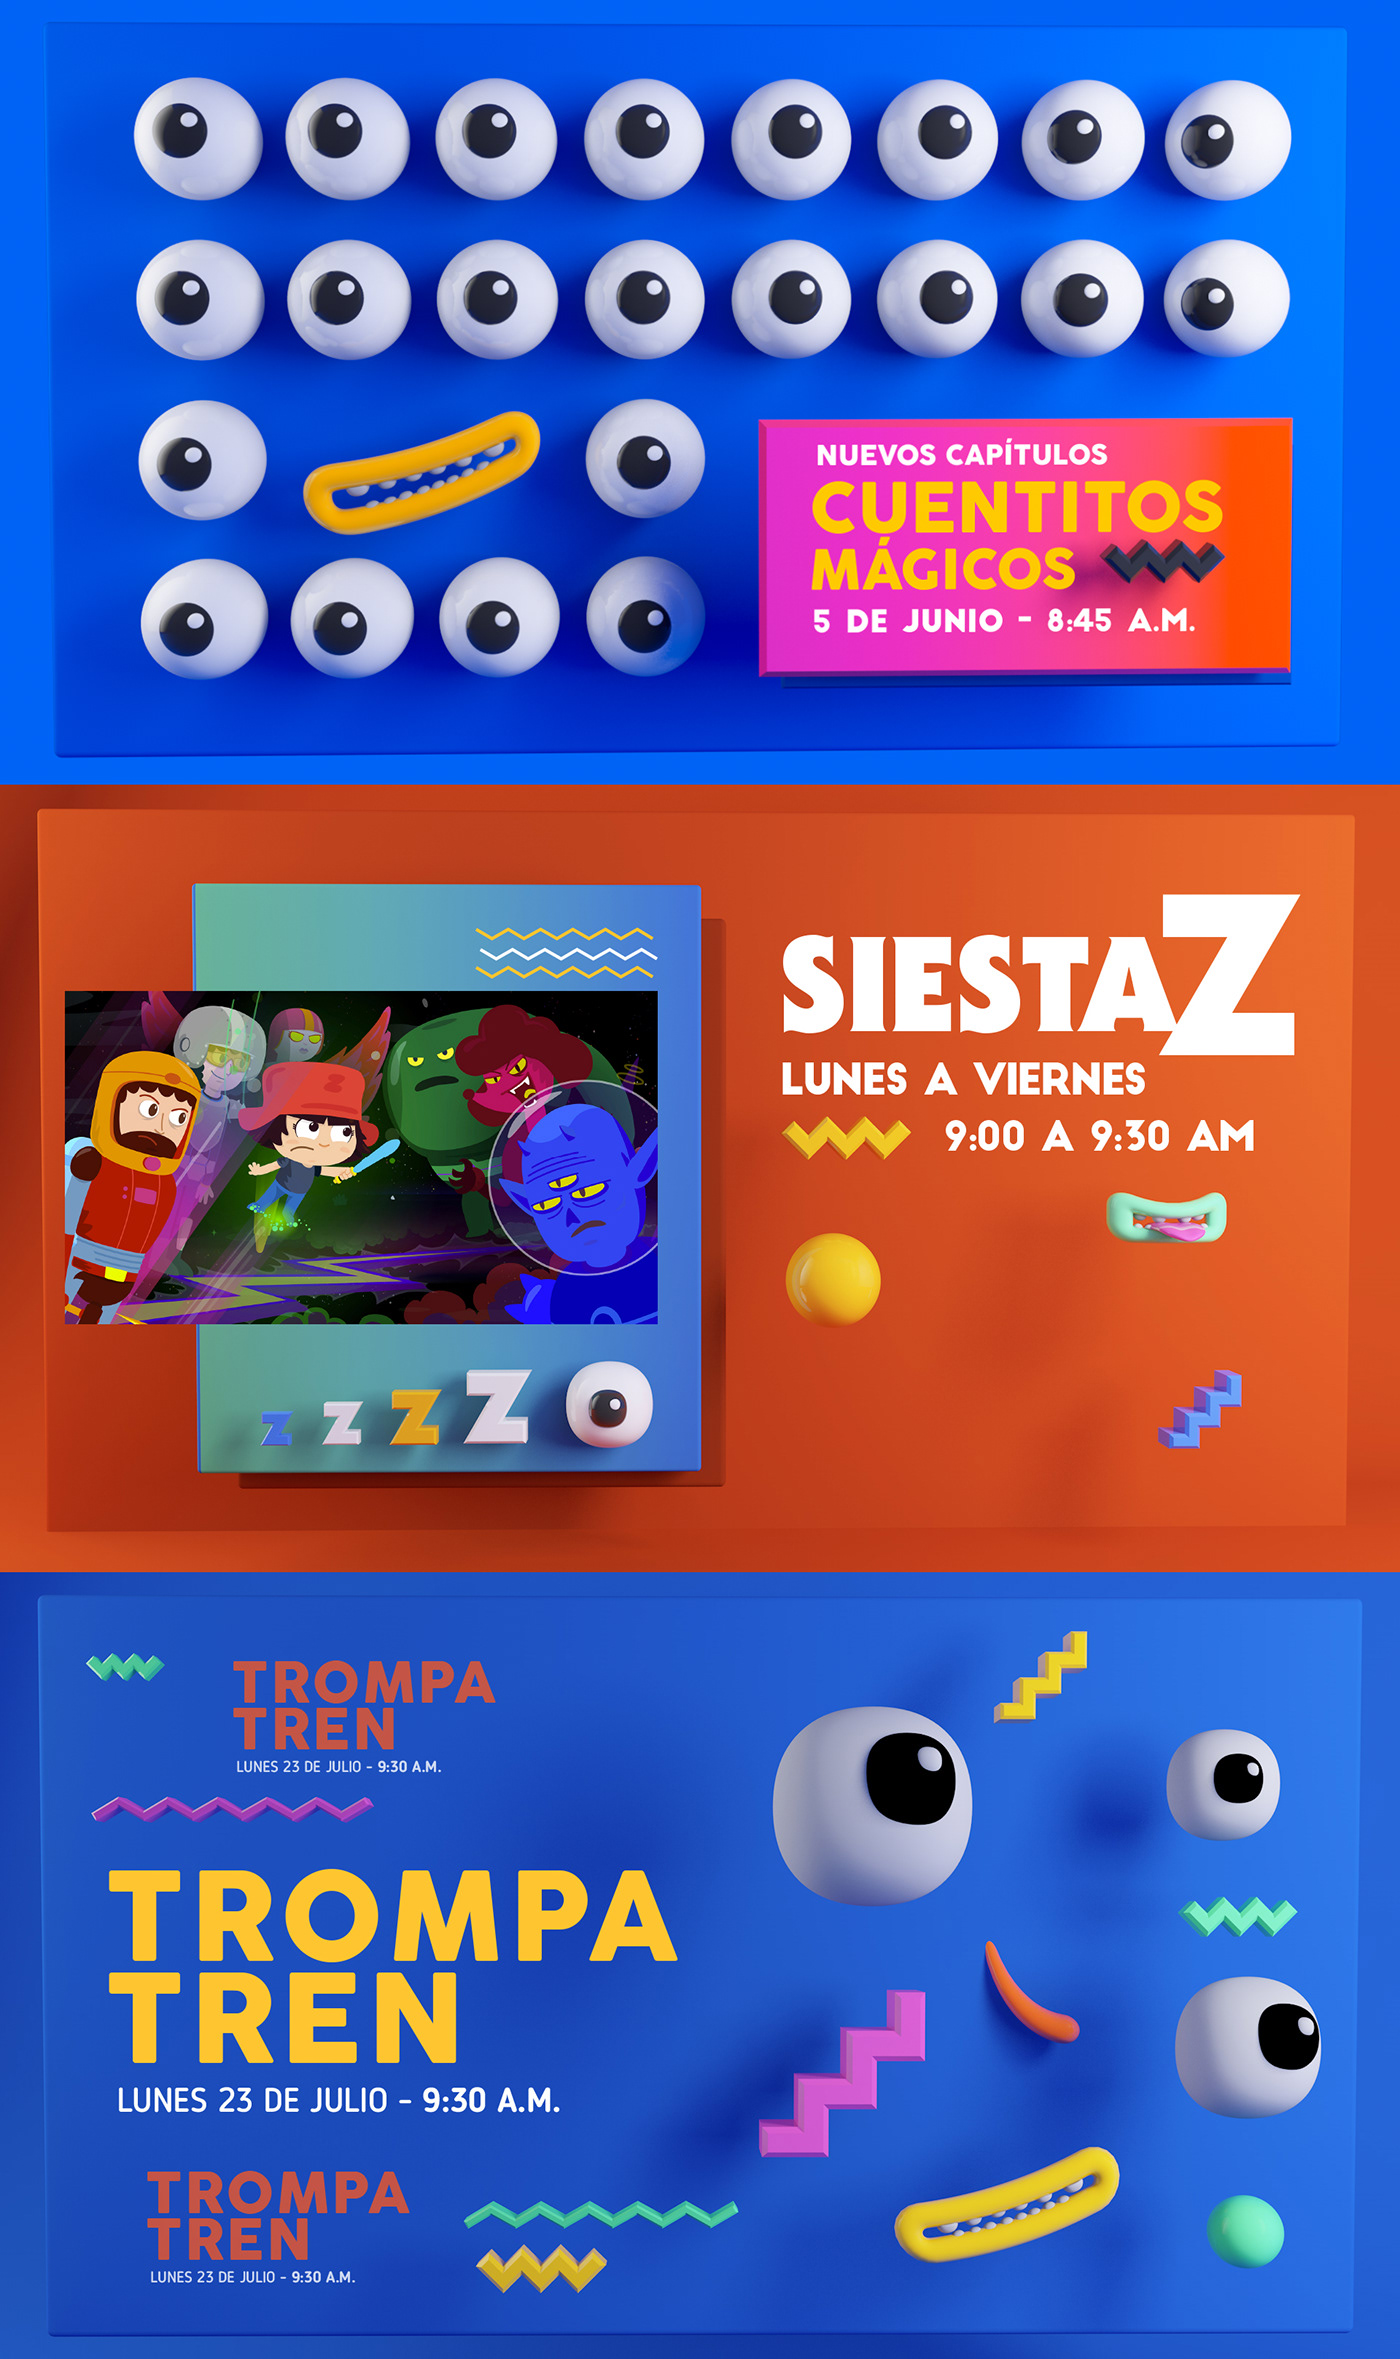 Miseñal señal colombia Character design animation  tv colors